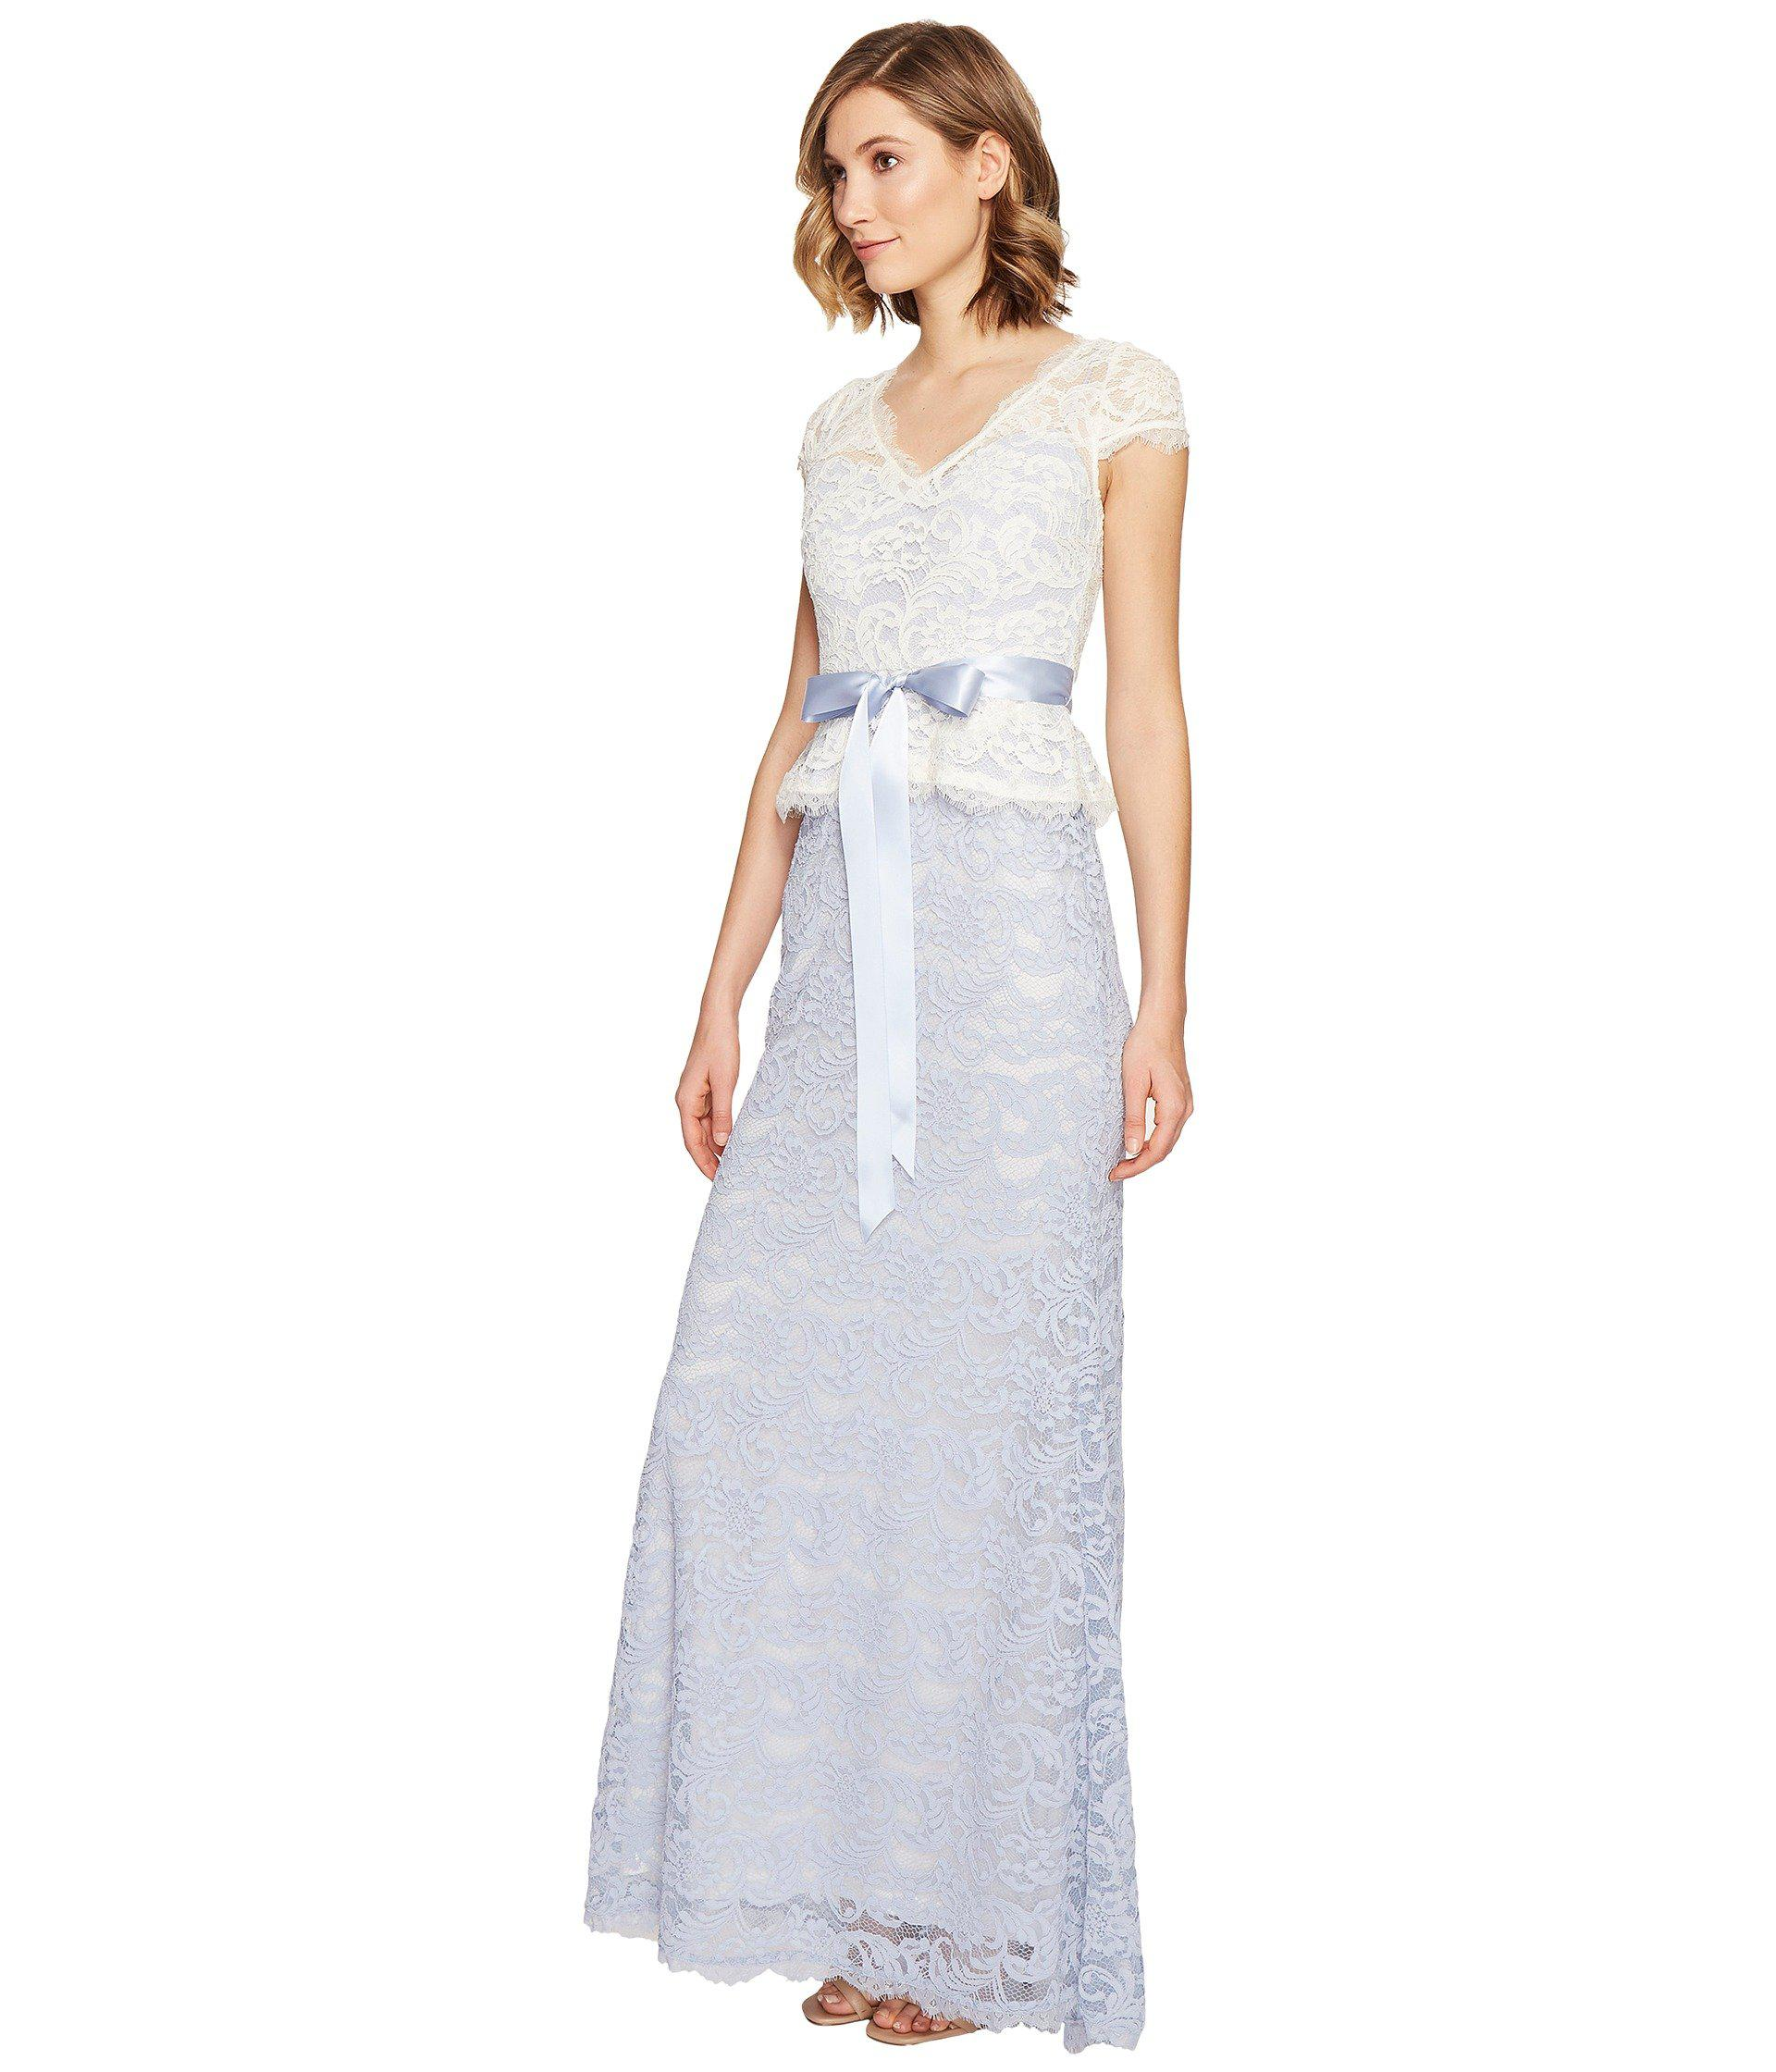 Lyst - Adrianna Papell Nouveau Scroll Lace Gown in Blue - Save ...